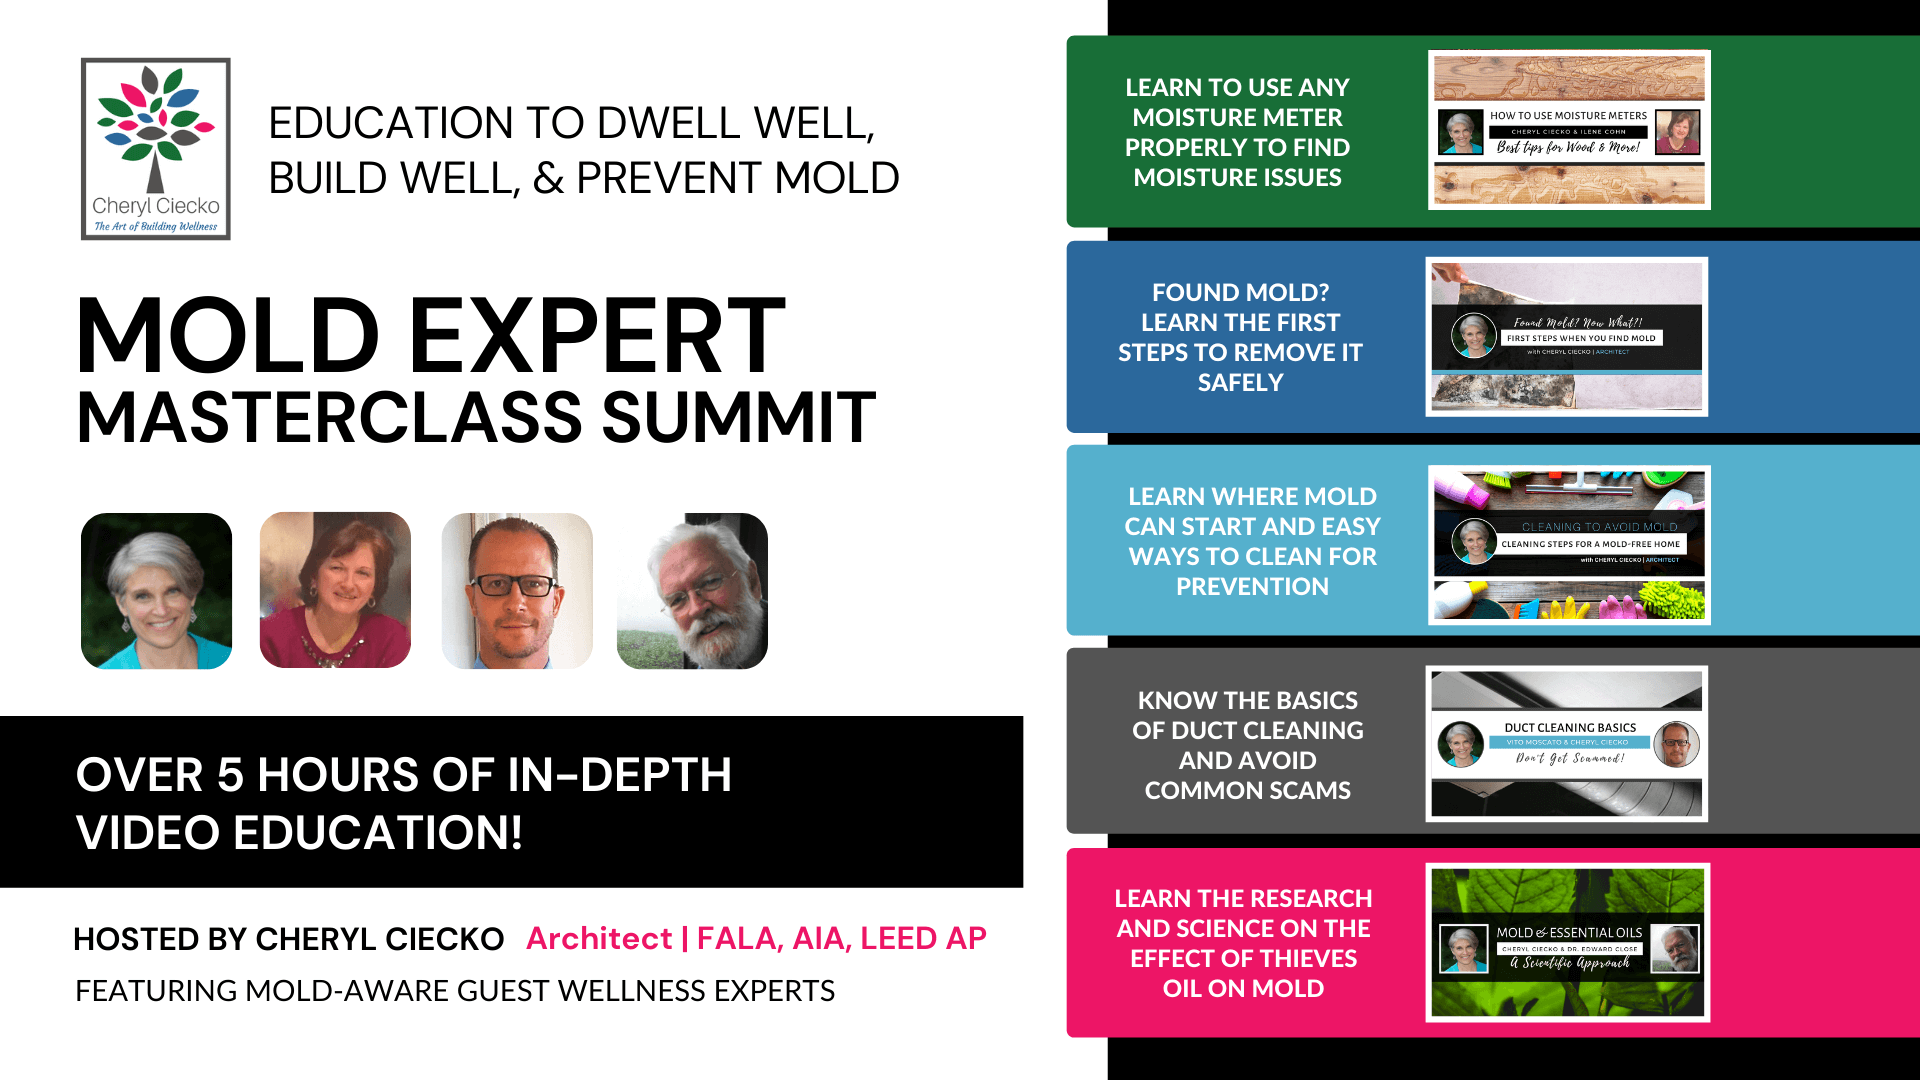 Mold Remediation and Testing. The Mold Expert Masterclass Summit